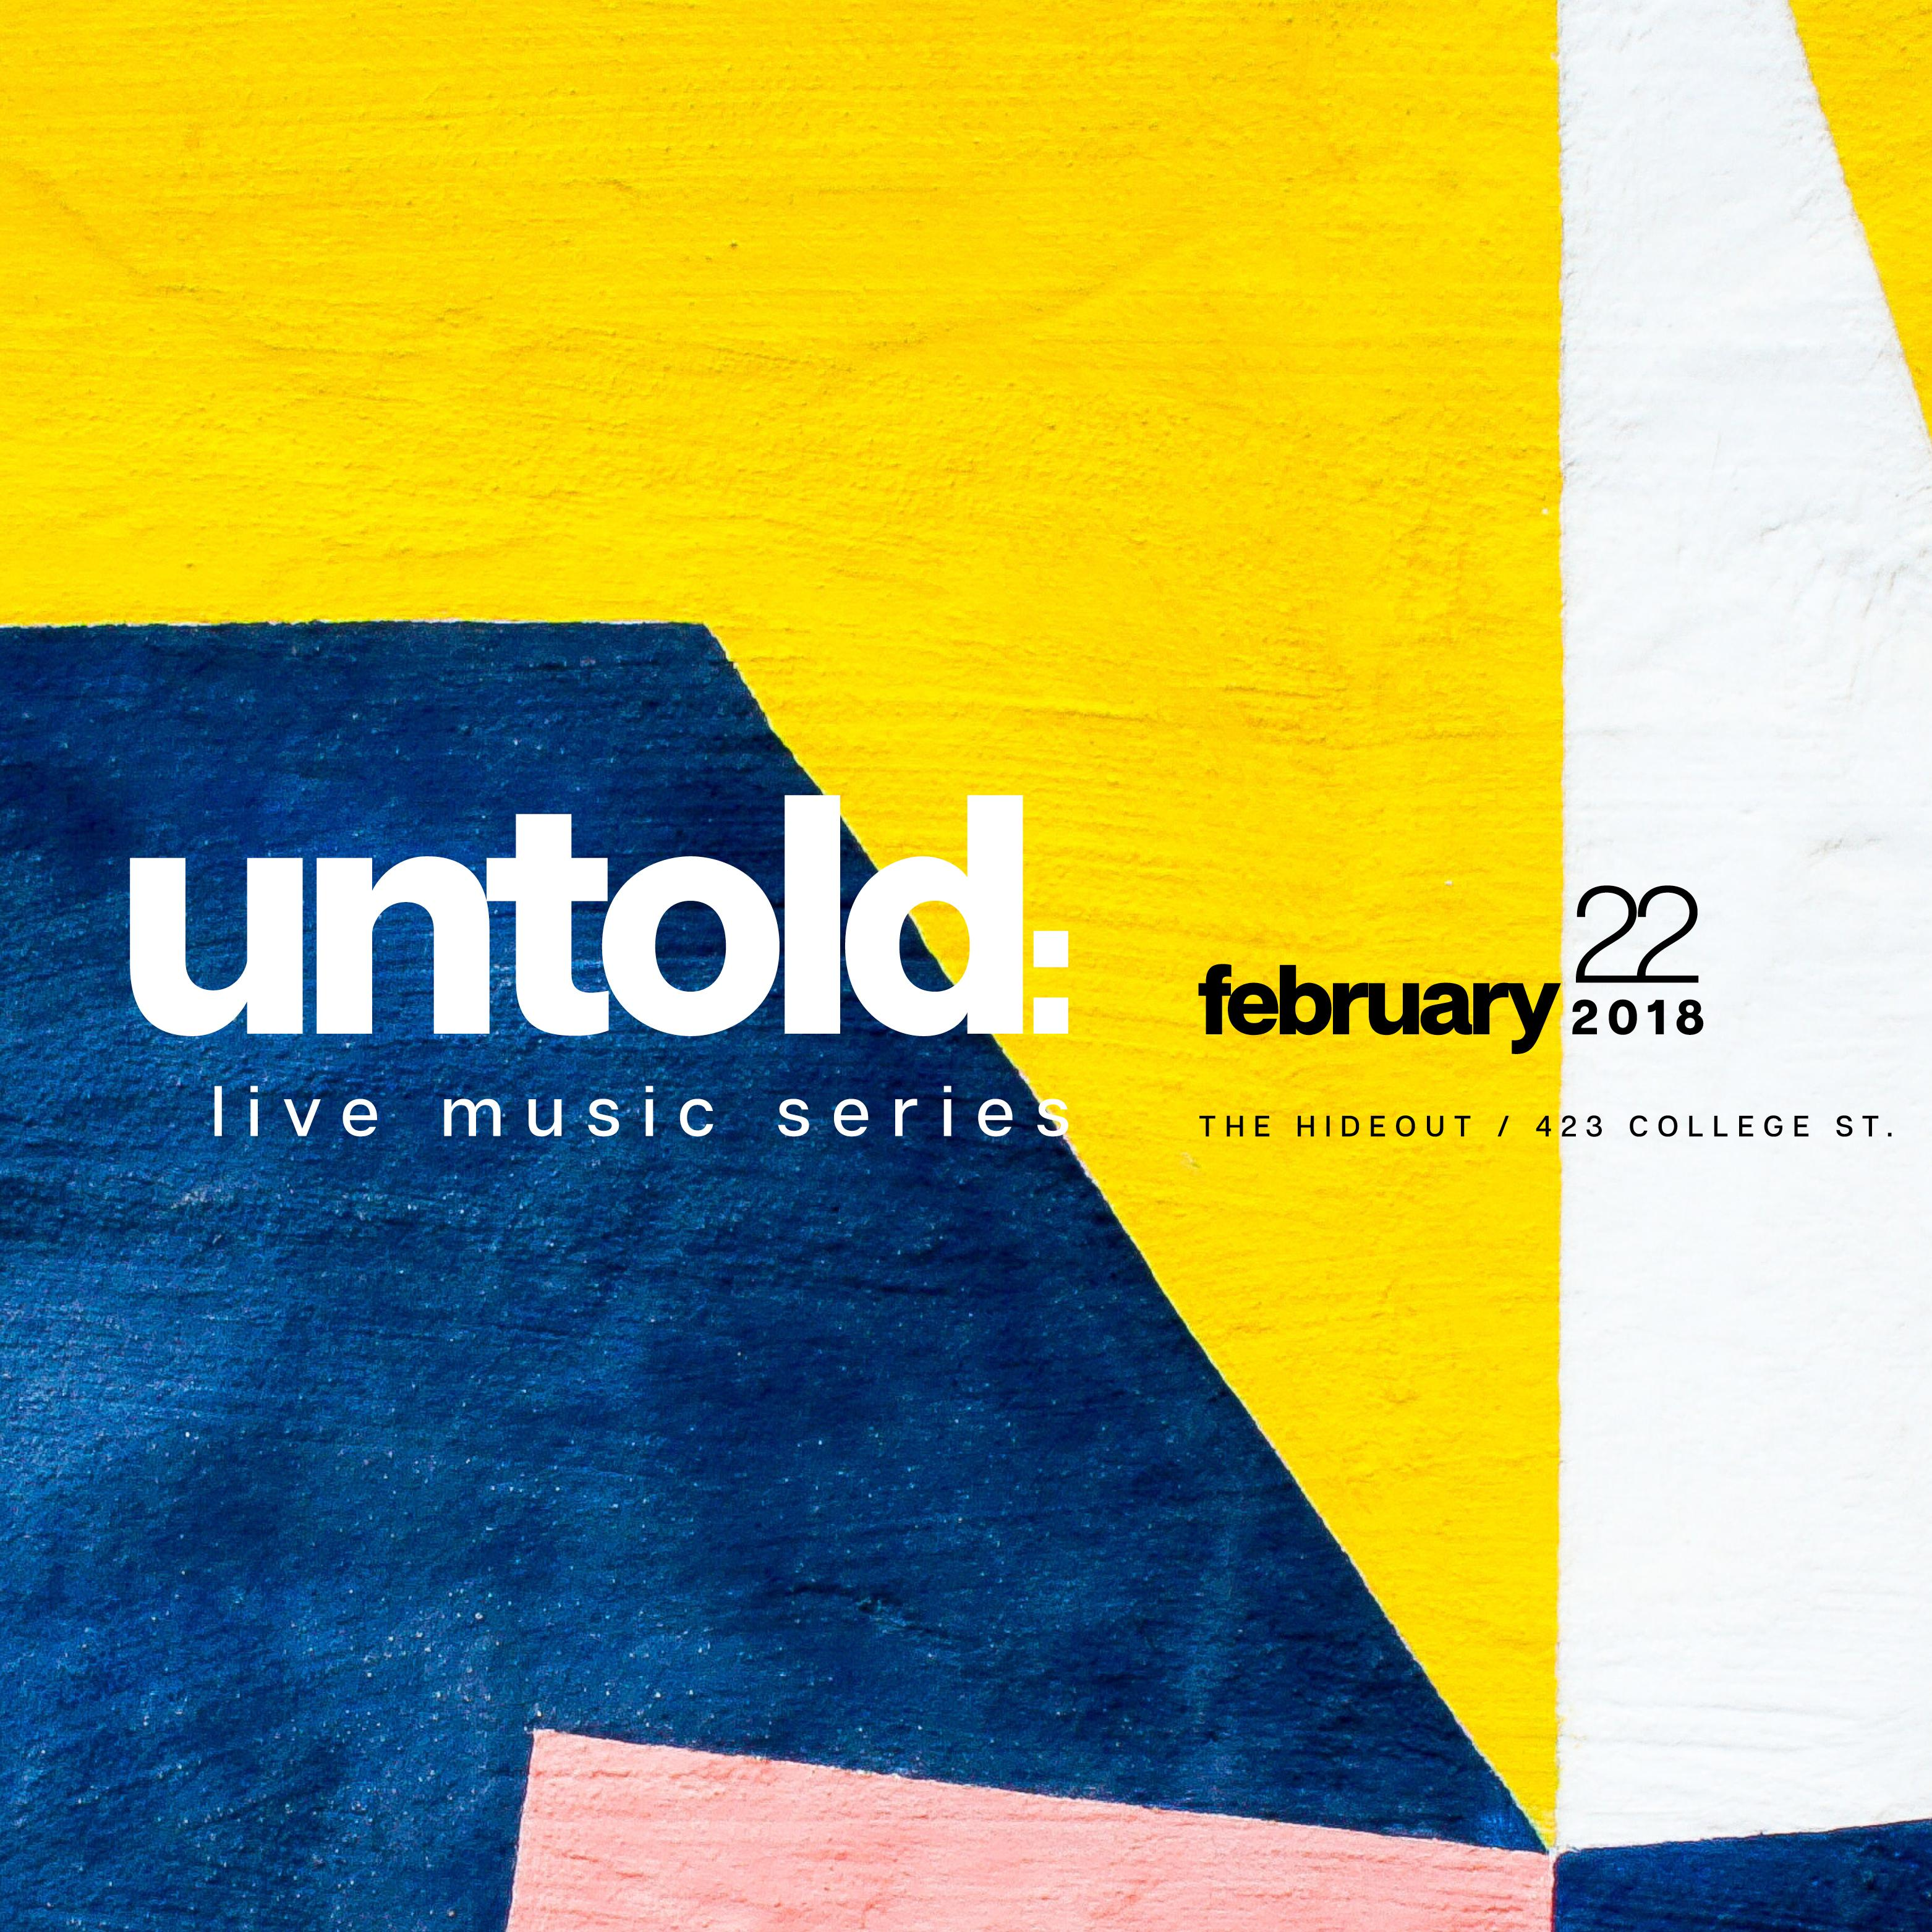 untold: Live music series @ THE HIDEOUT TORONTO